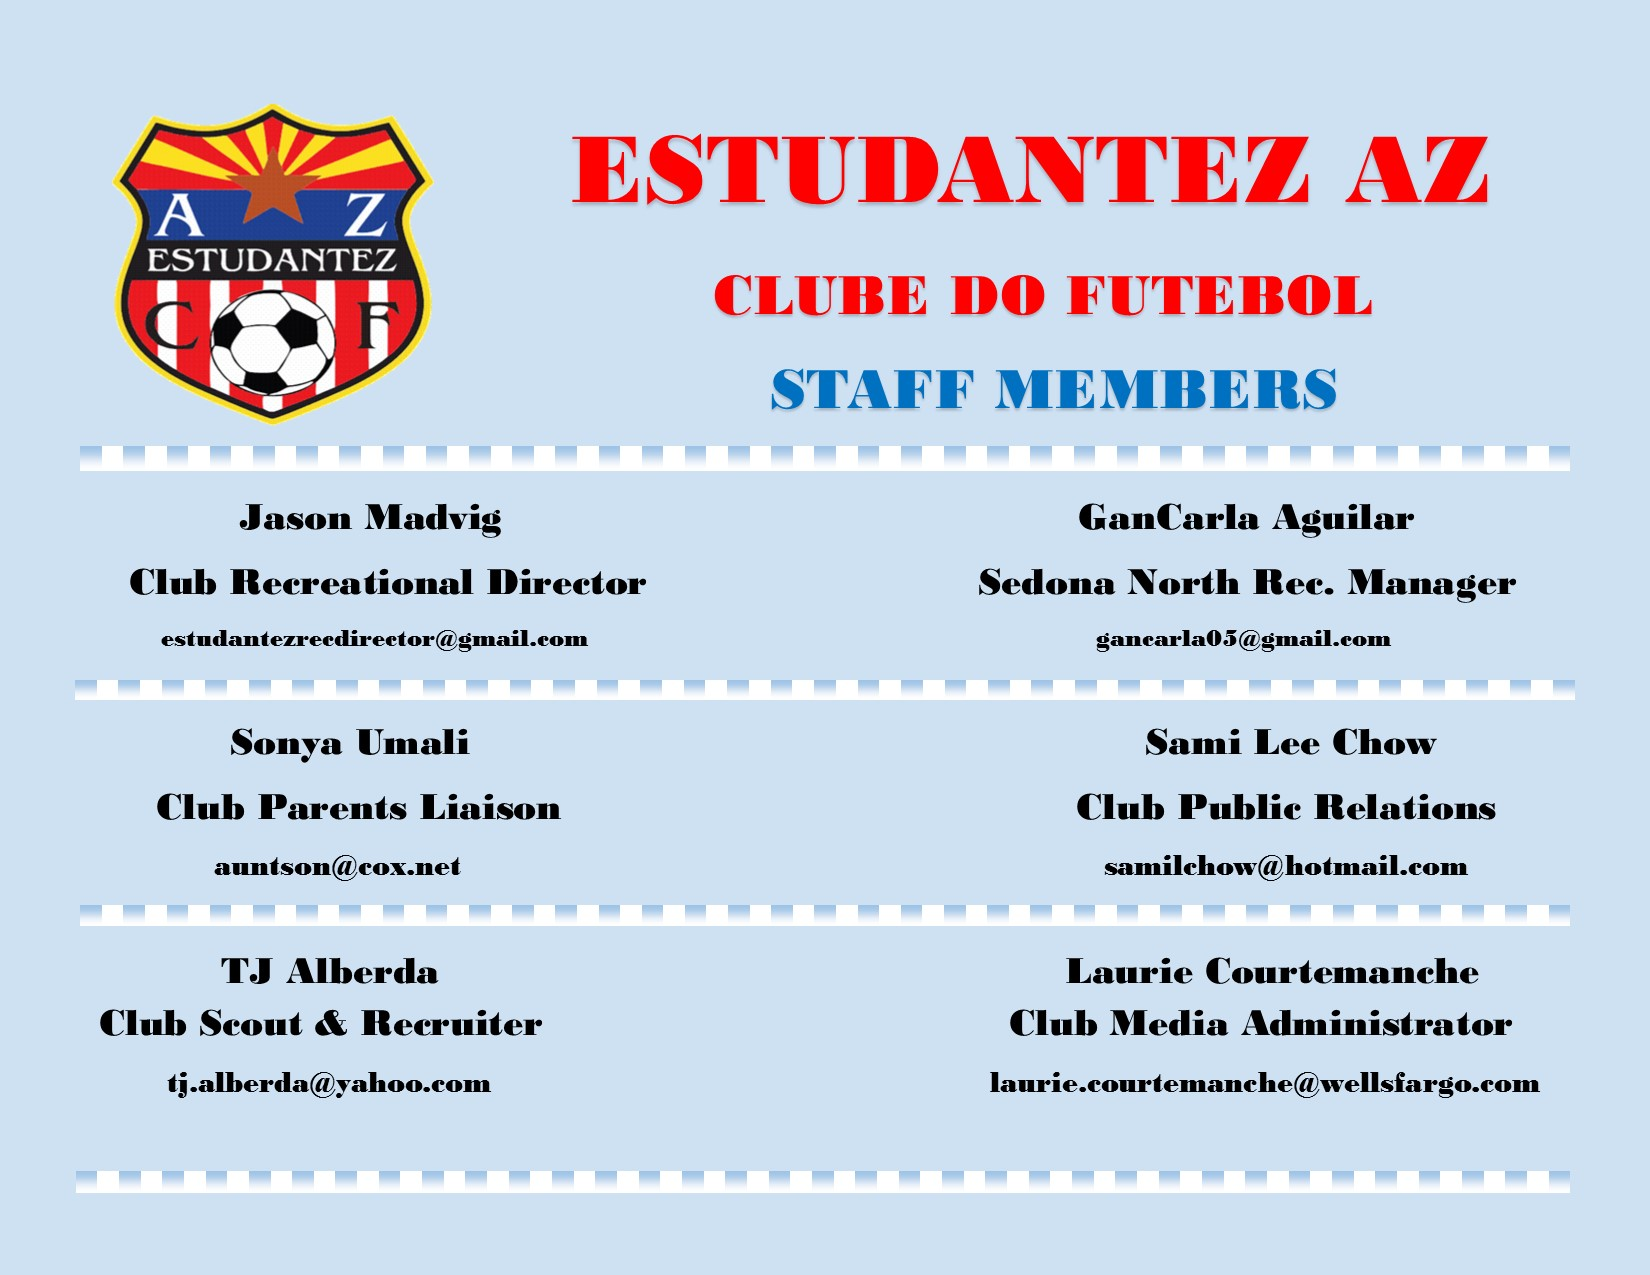 New Club Staff Members